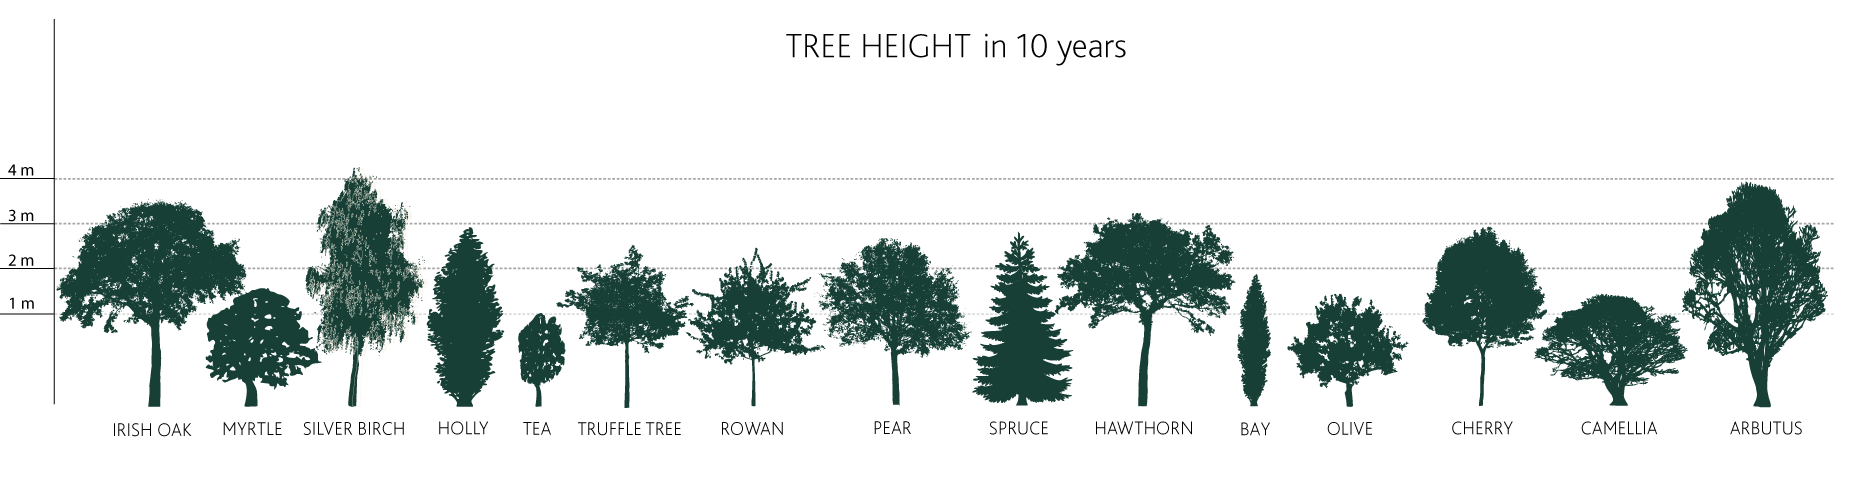 Tree Height in 10 years